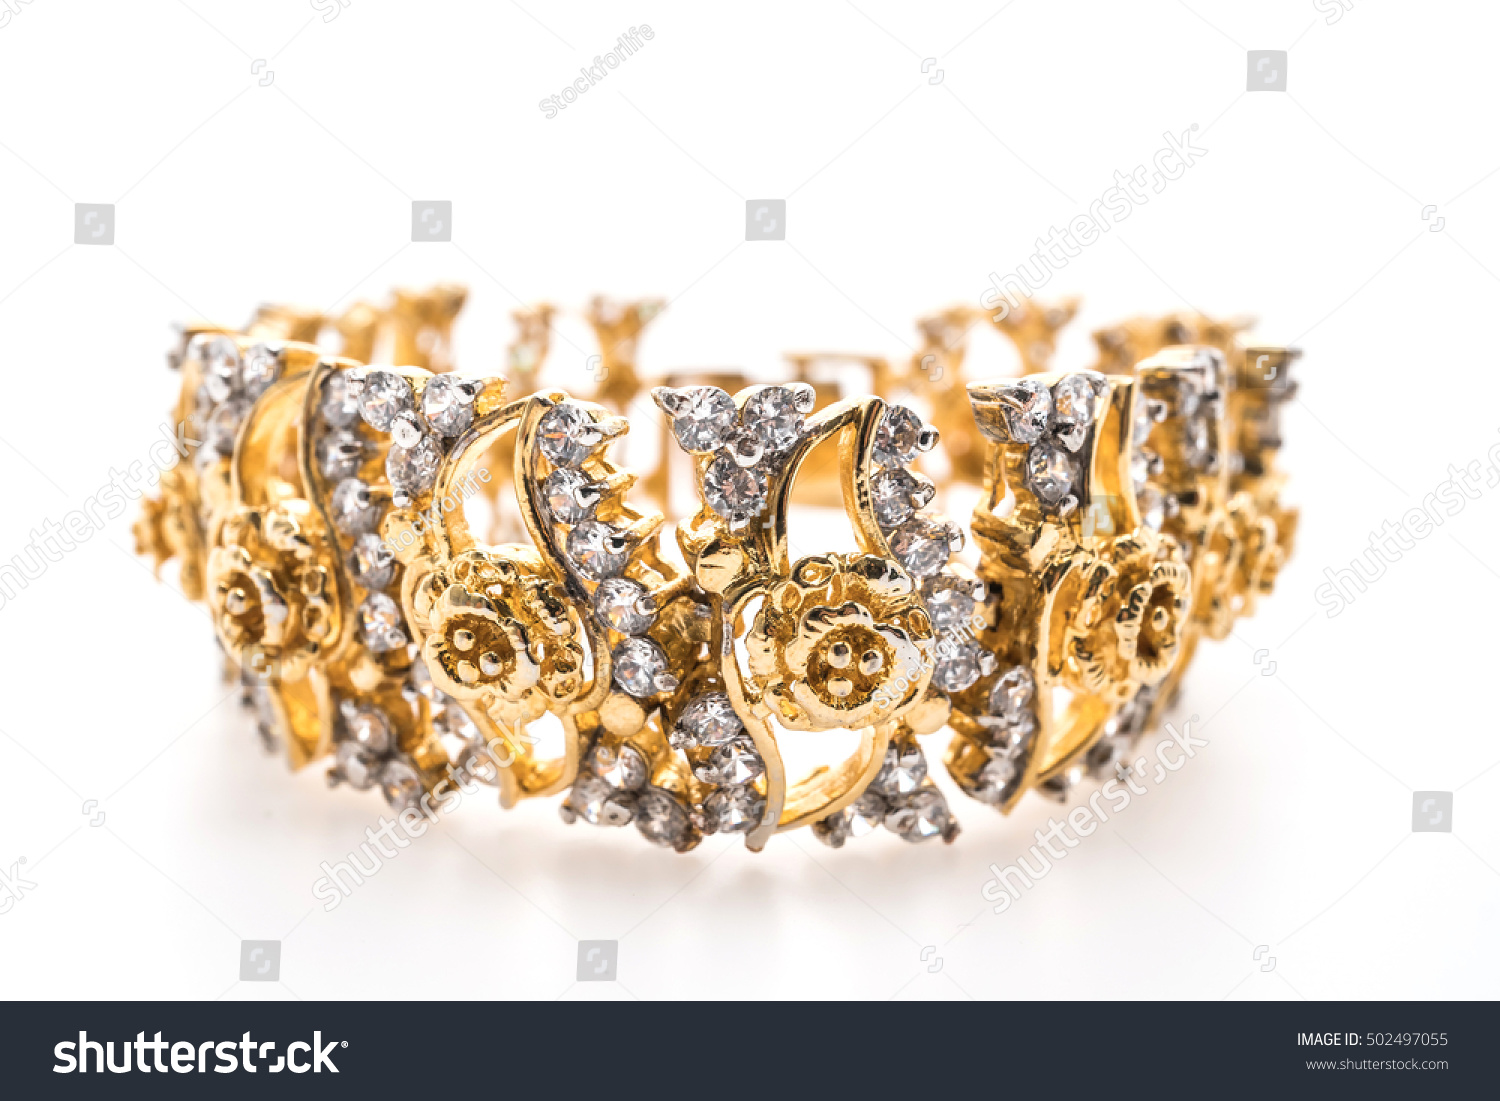 Beautiful Luxury Gold Bracelet Diamond Jewelry Stock Photo ...